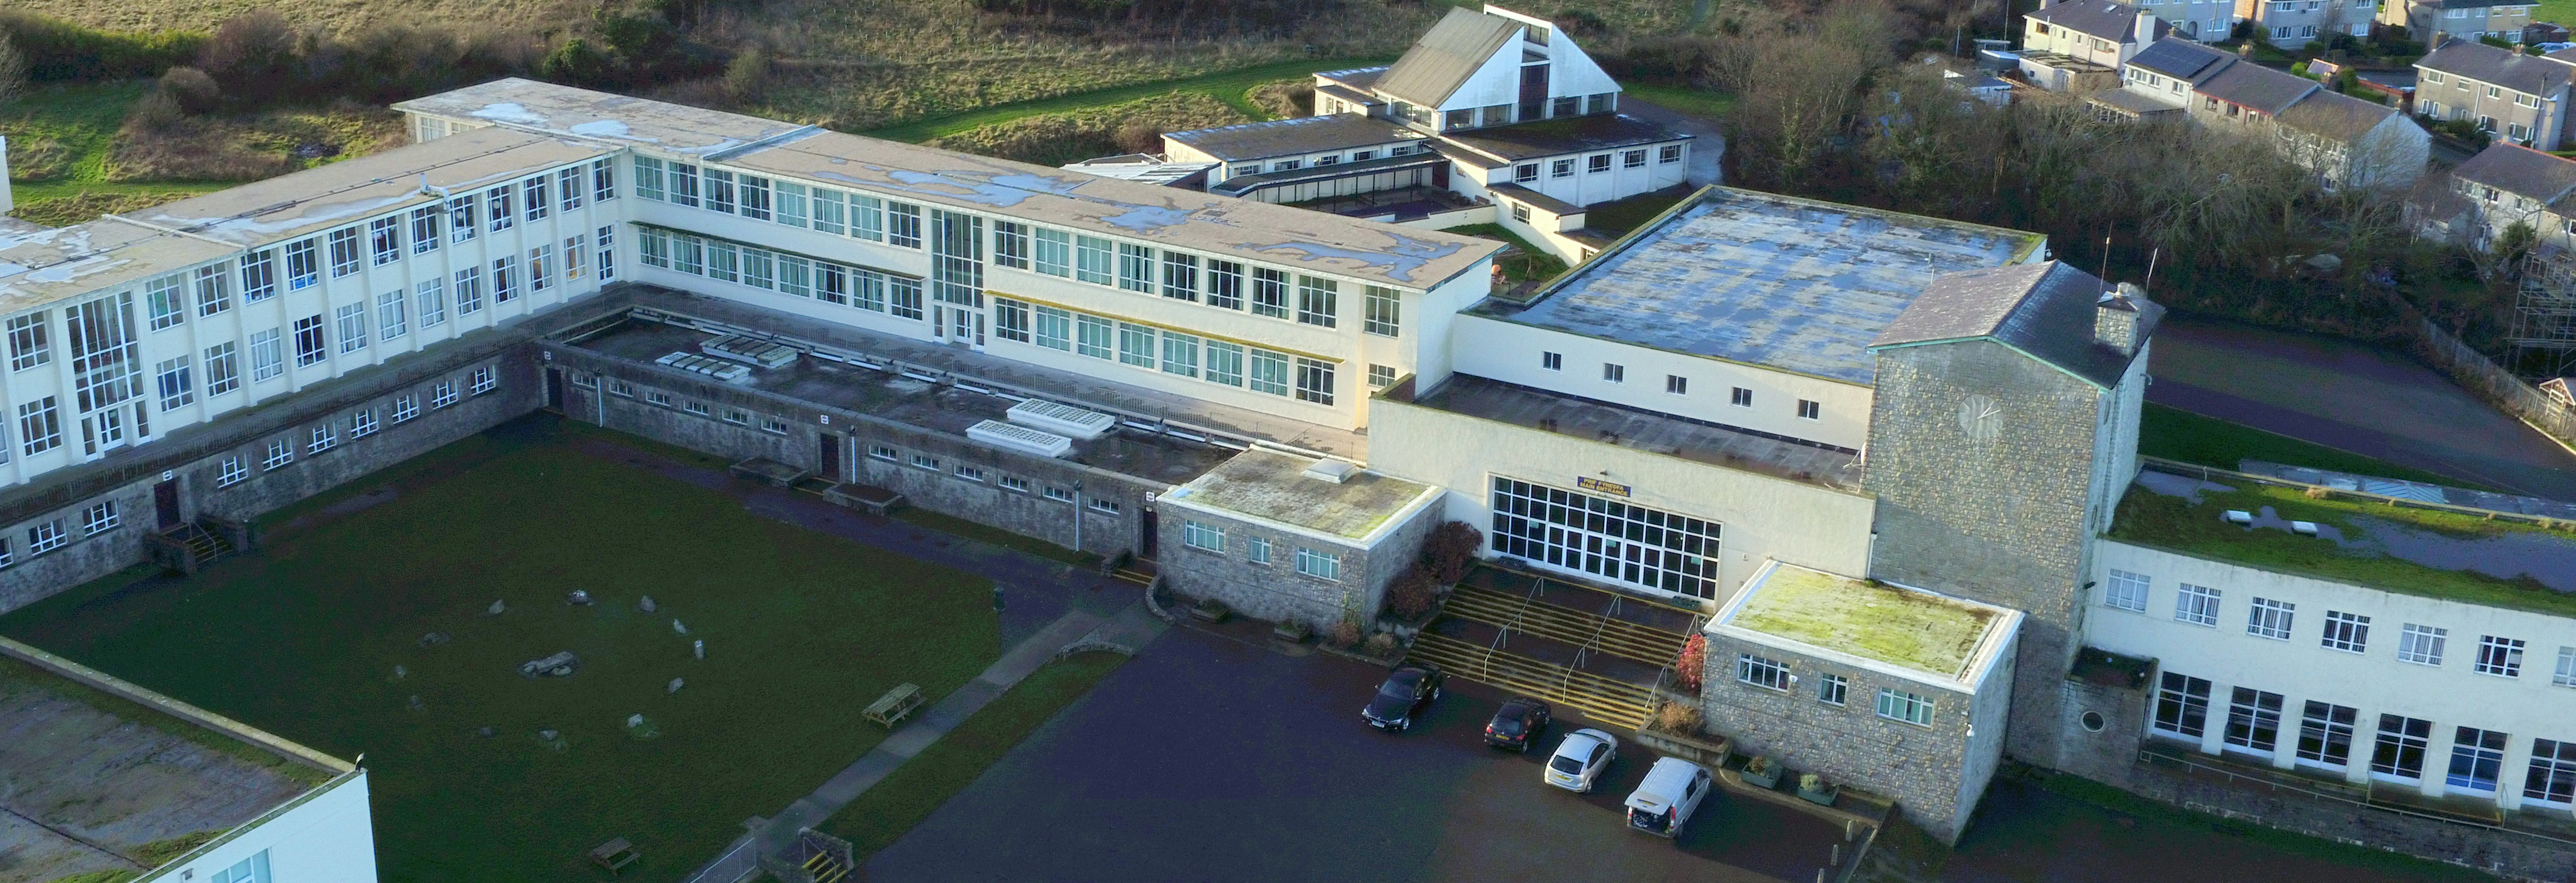 Drone-roof-inspection-Ysgol-Sir-Thomas-Jones-Amlwch-North-Wales.JPG#asset:486